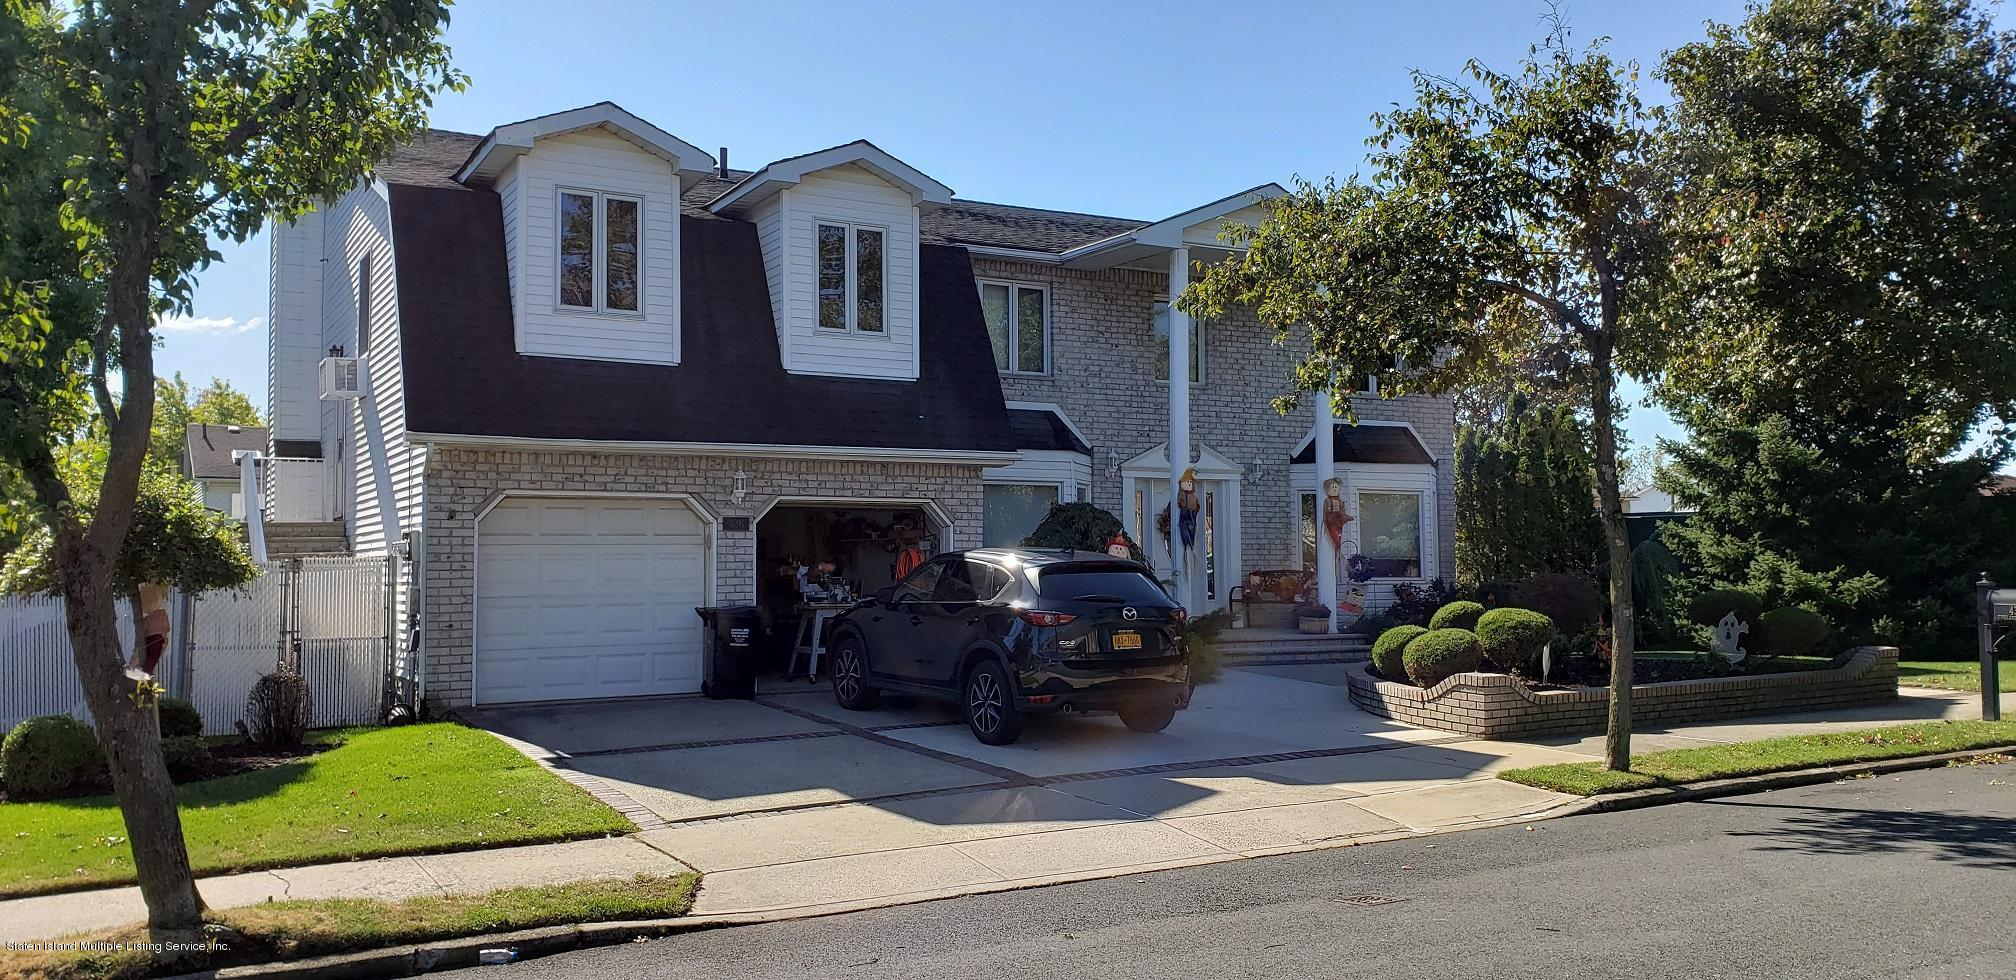 Two Family - Detached 436 Vineland Avenue  Staten Island, NY 10312, MLS-1132818-21